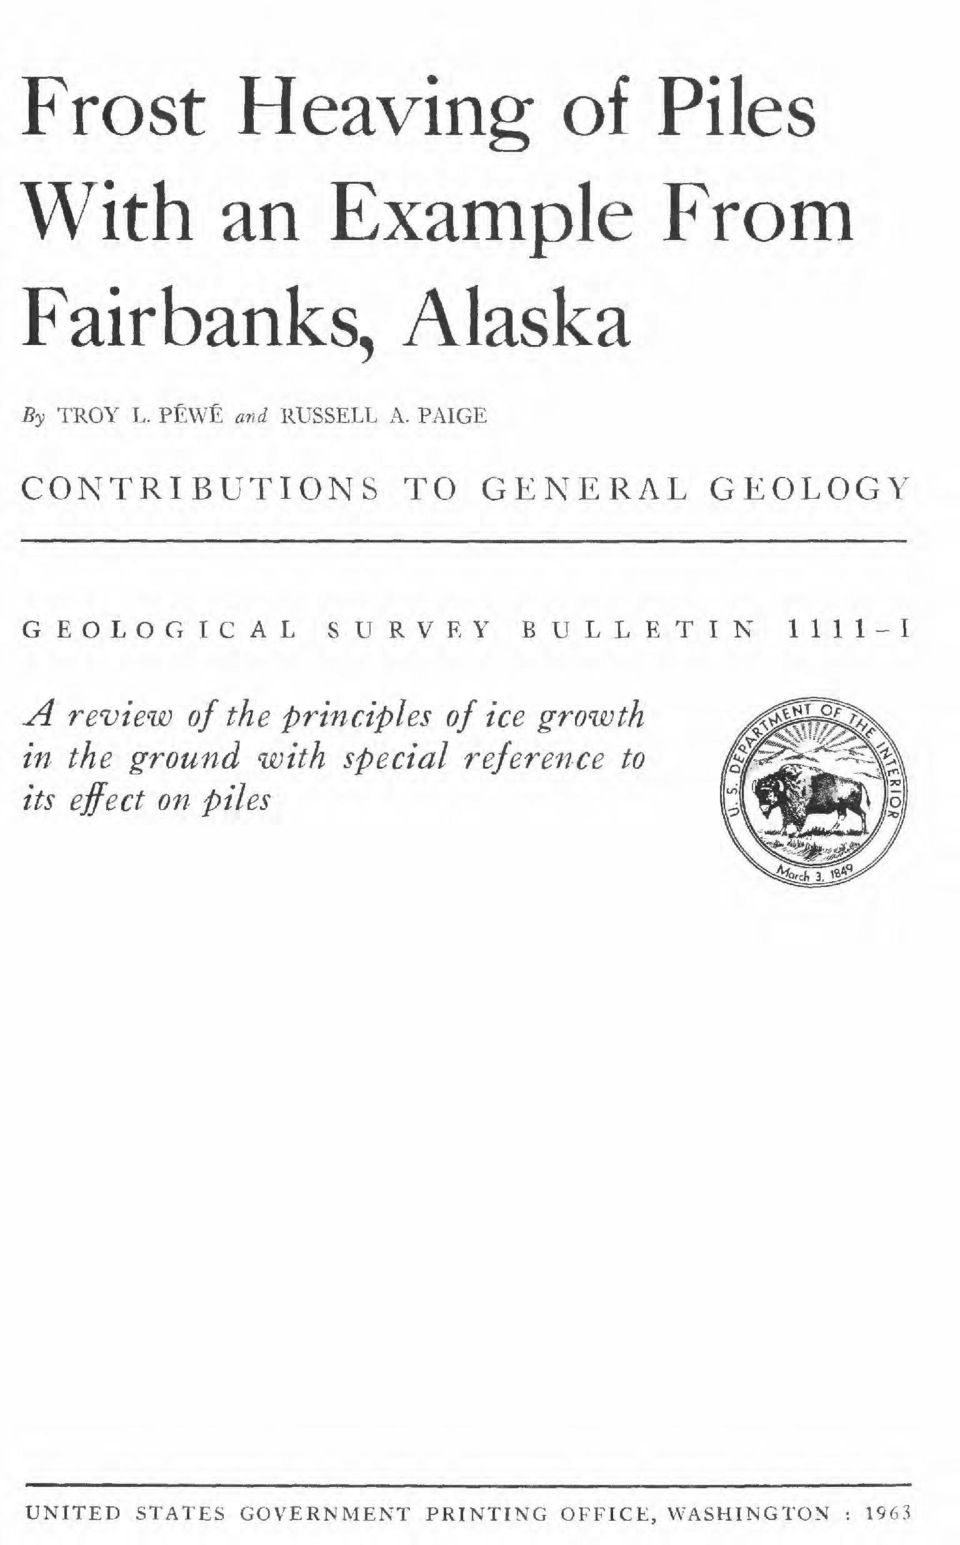 PAIGE CONTRIBUTIONS TO GENERAL GEOLOGY GEOLOGICAL SURVEY BULLETIN 1111-1 A review